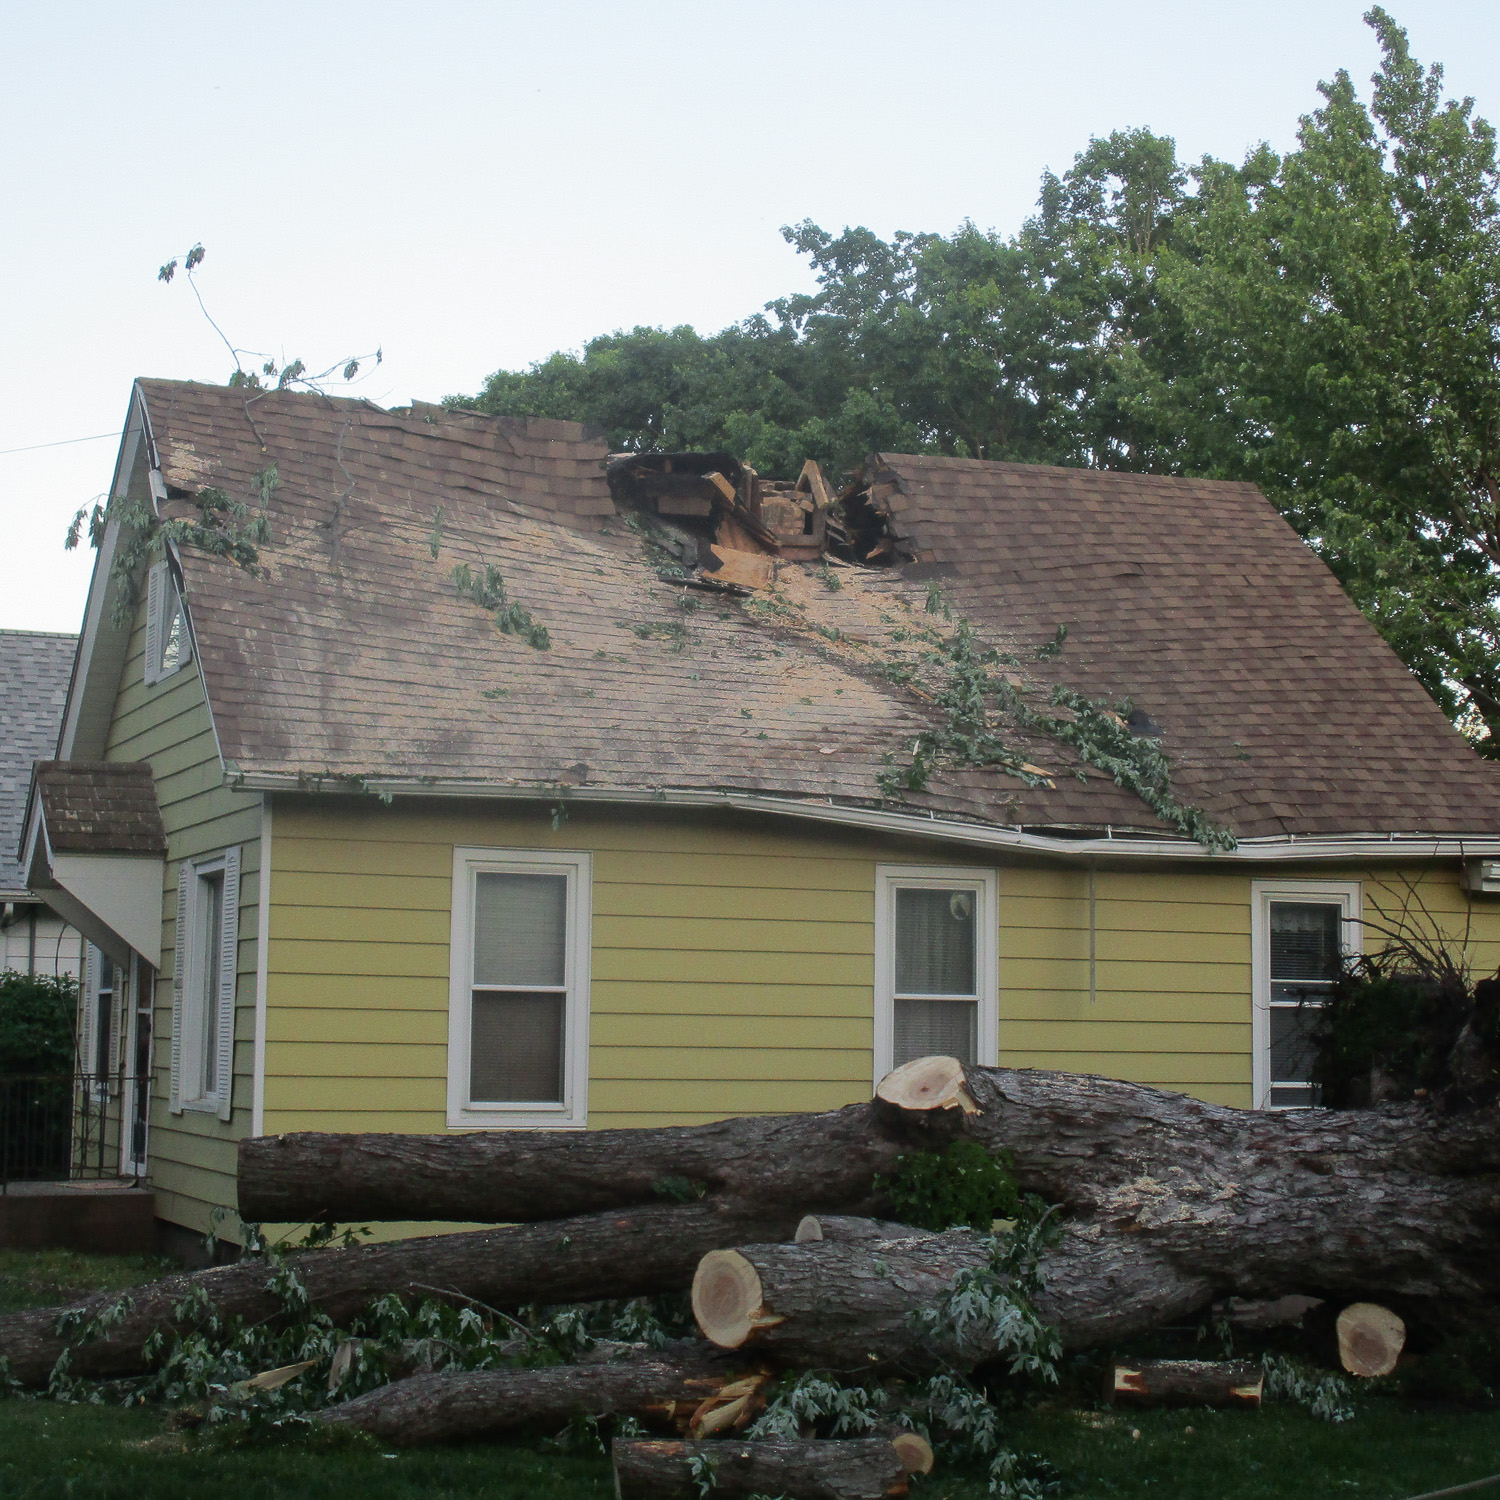 roof damage from fallen tree-large hole in roof from tree impact.